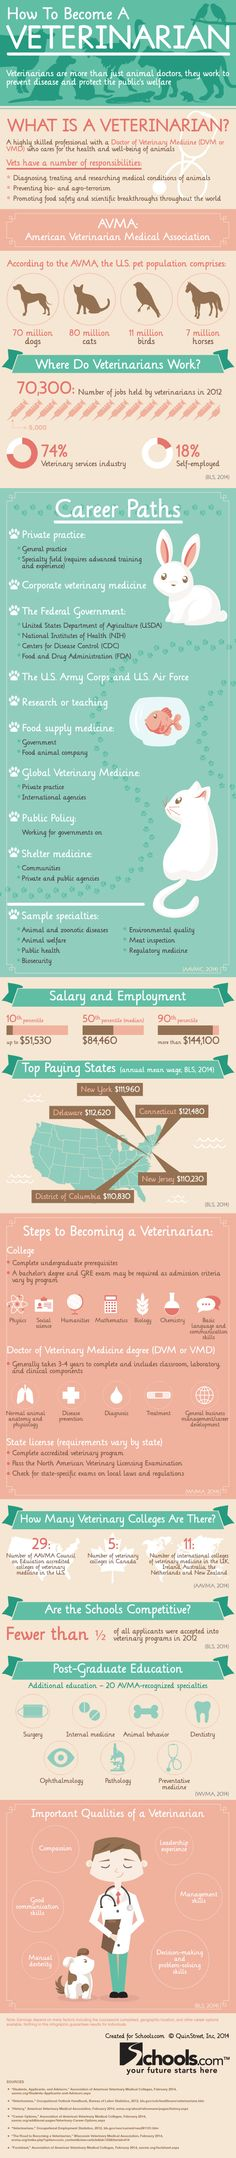 Do you want to be a veterinarian? http://www.schools.com/visuals/how-to-become-a-veterinarian.html #pet #infographic